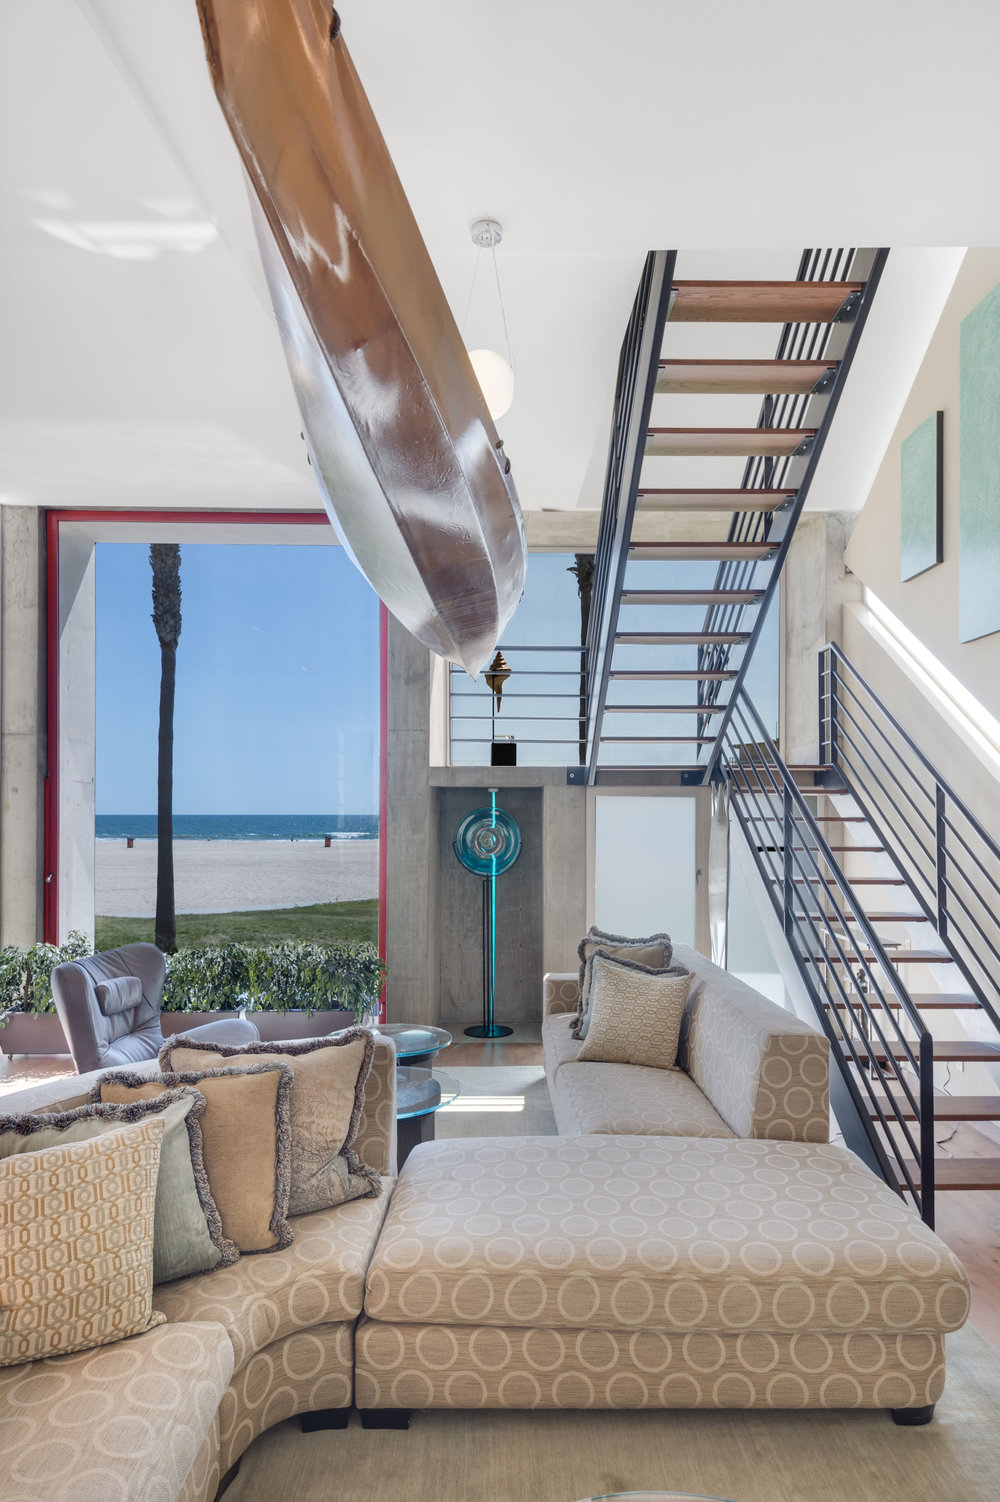 023 Beach Stairs Ocean Front Walk Venice For Sale Lease The Malibu Life Team Luxury Real Estate.jpg